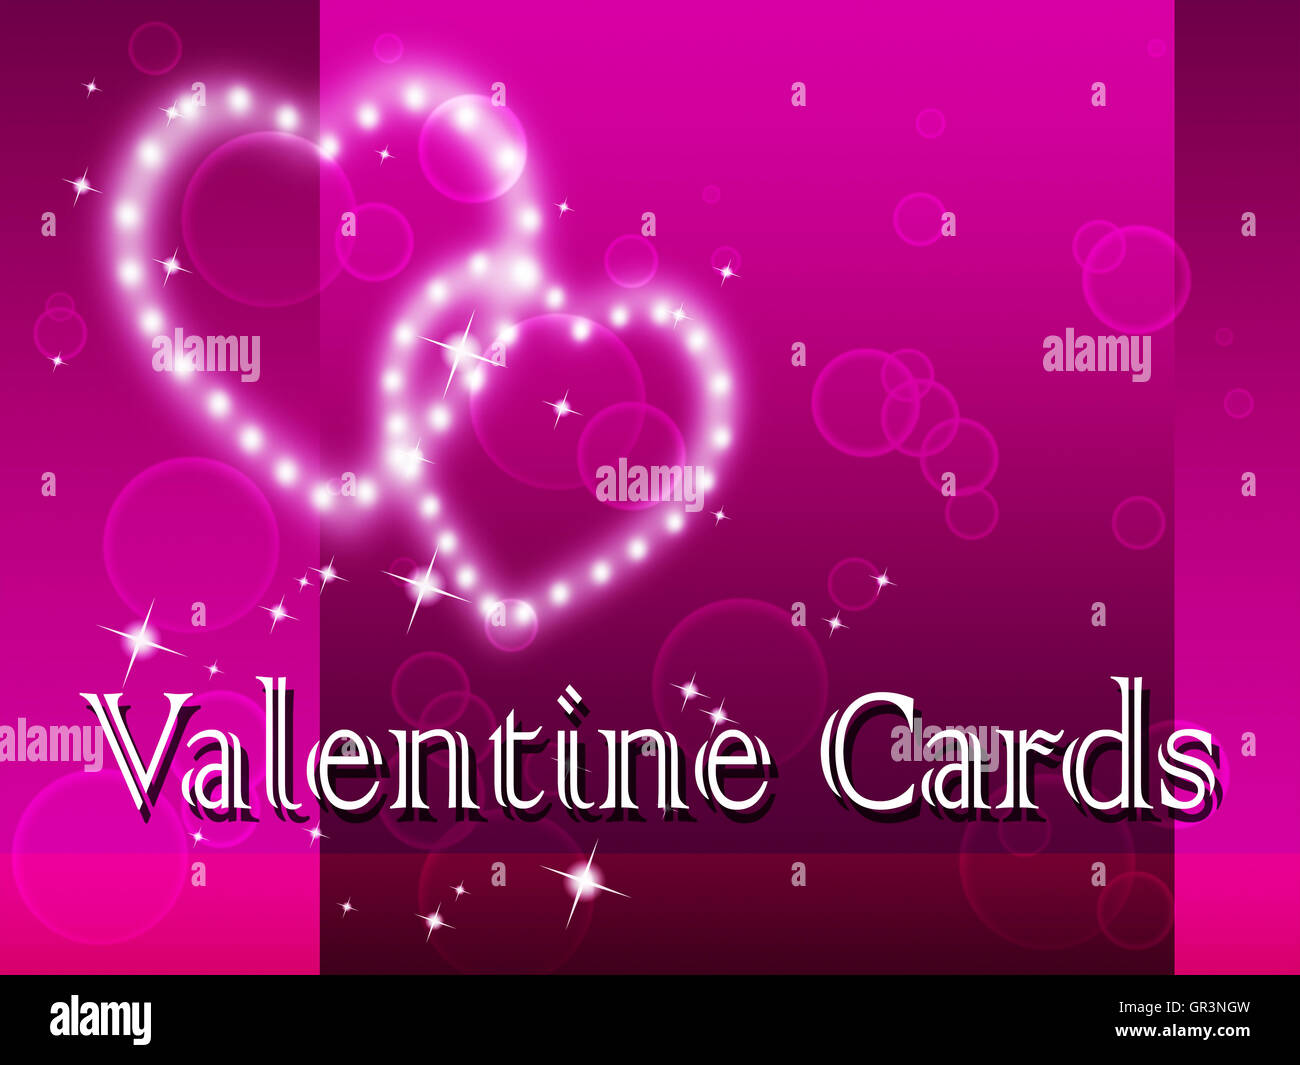 Valentines Day Cards Stock Photos Valentines Day Cards Stock